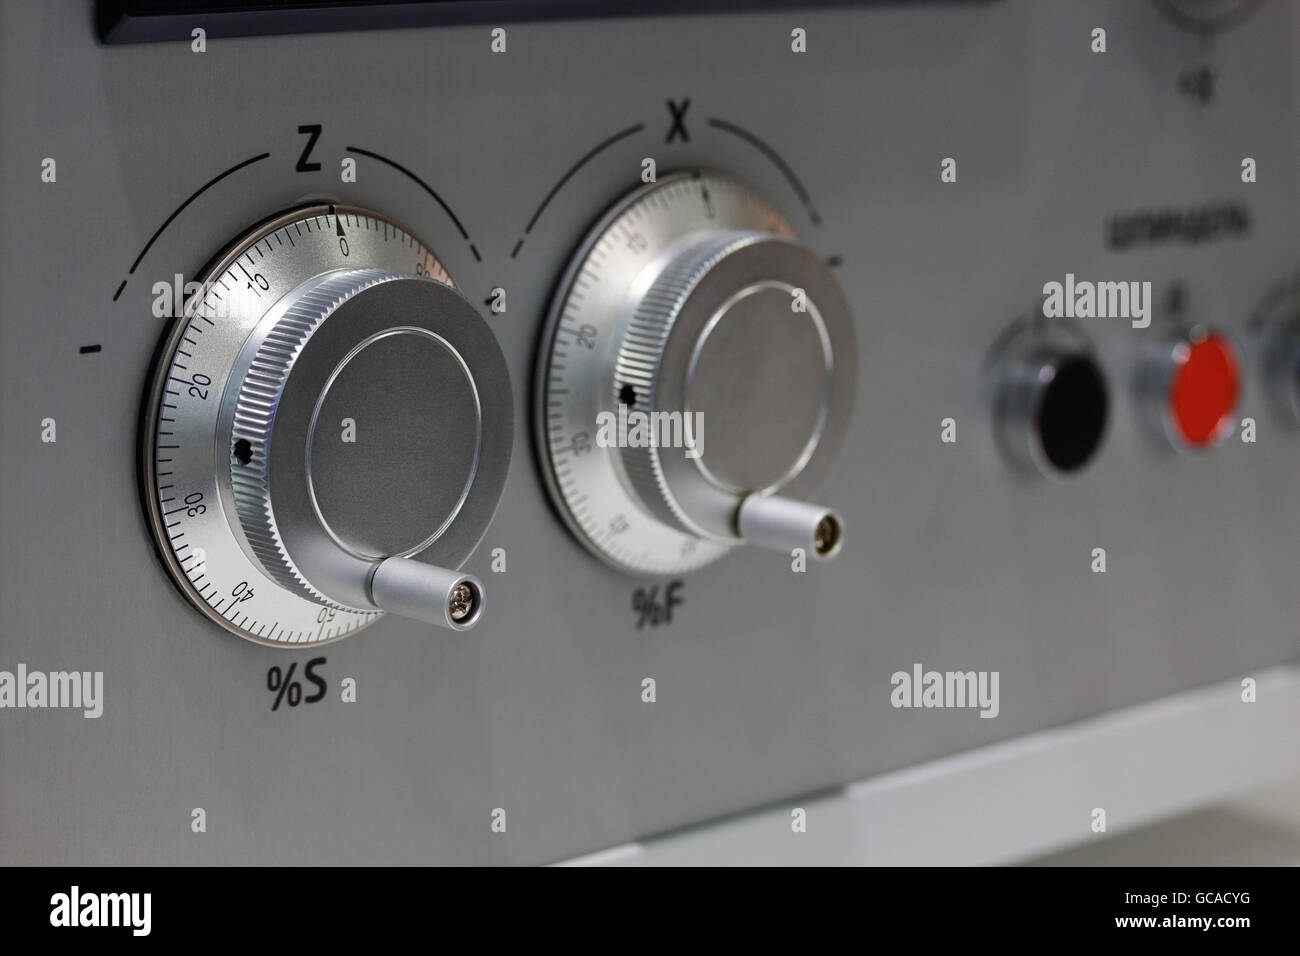 Manual control panel for CNC system with electronic handwheels. - Stock Image